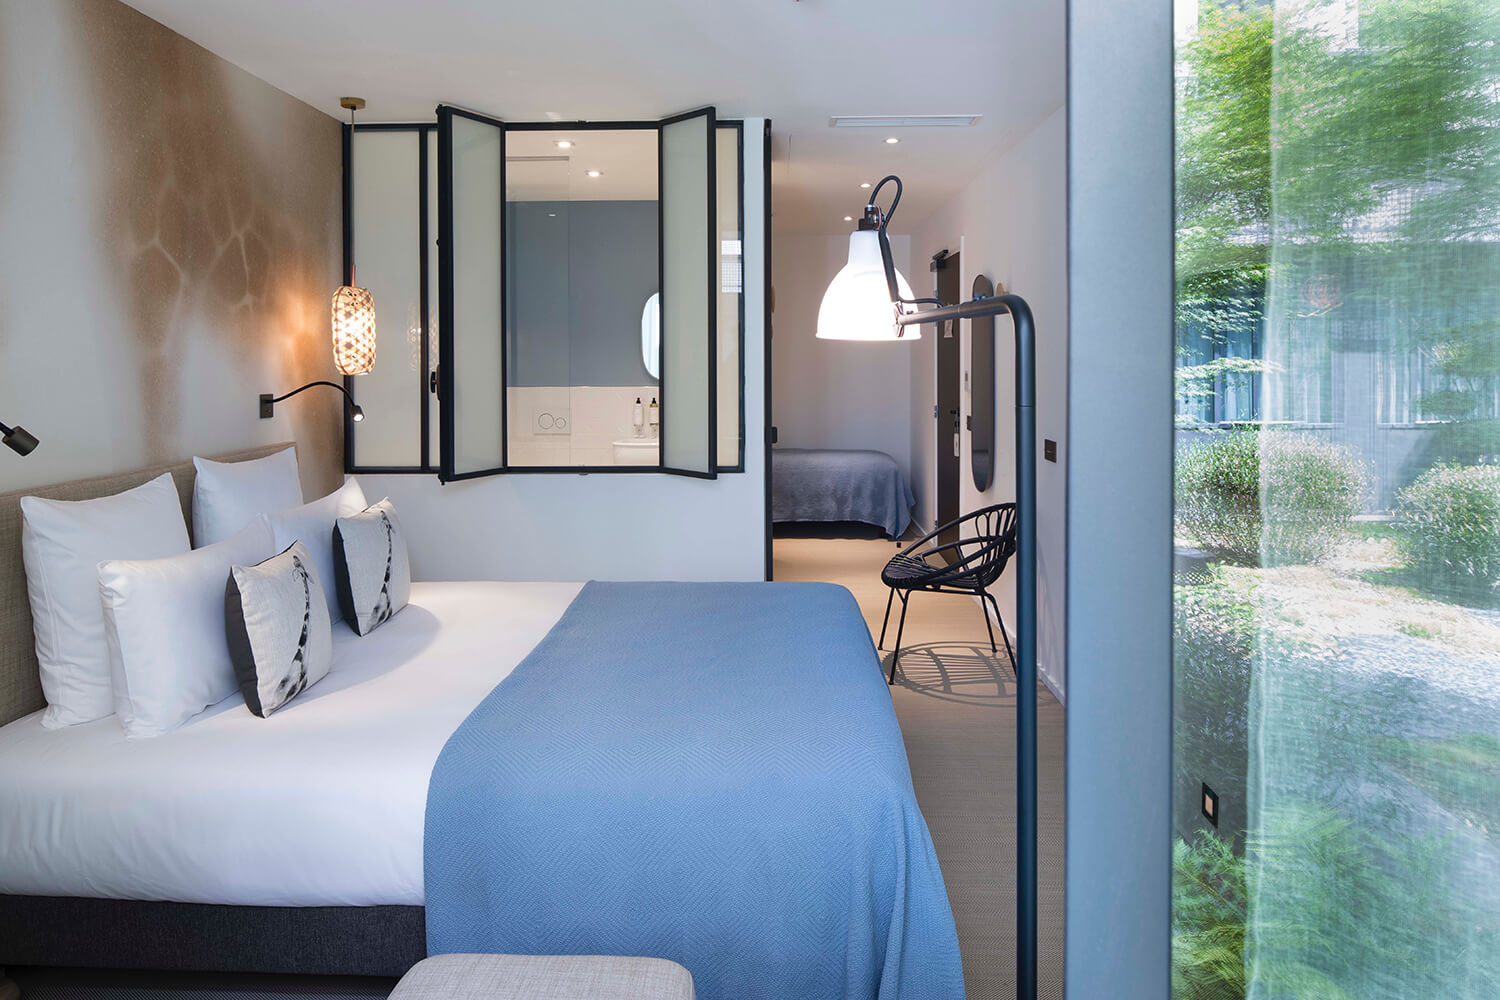 Les deux girafes un h tel chic et contemporain paris for Hotel contemporain paris